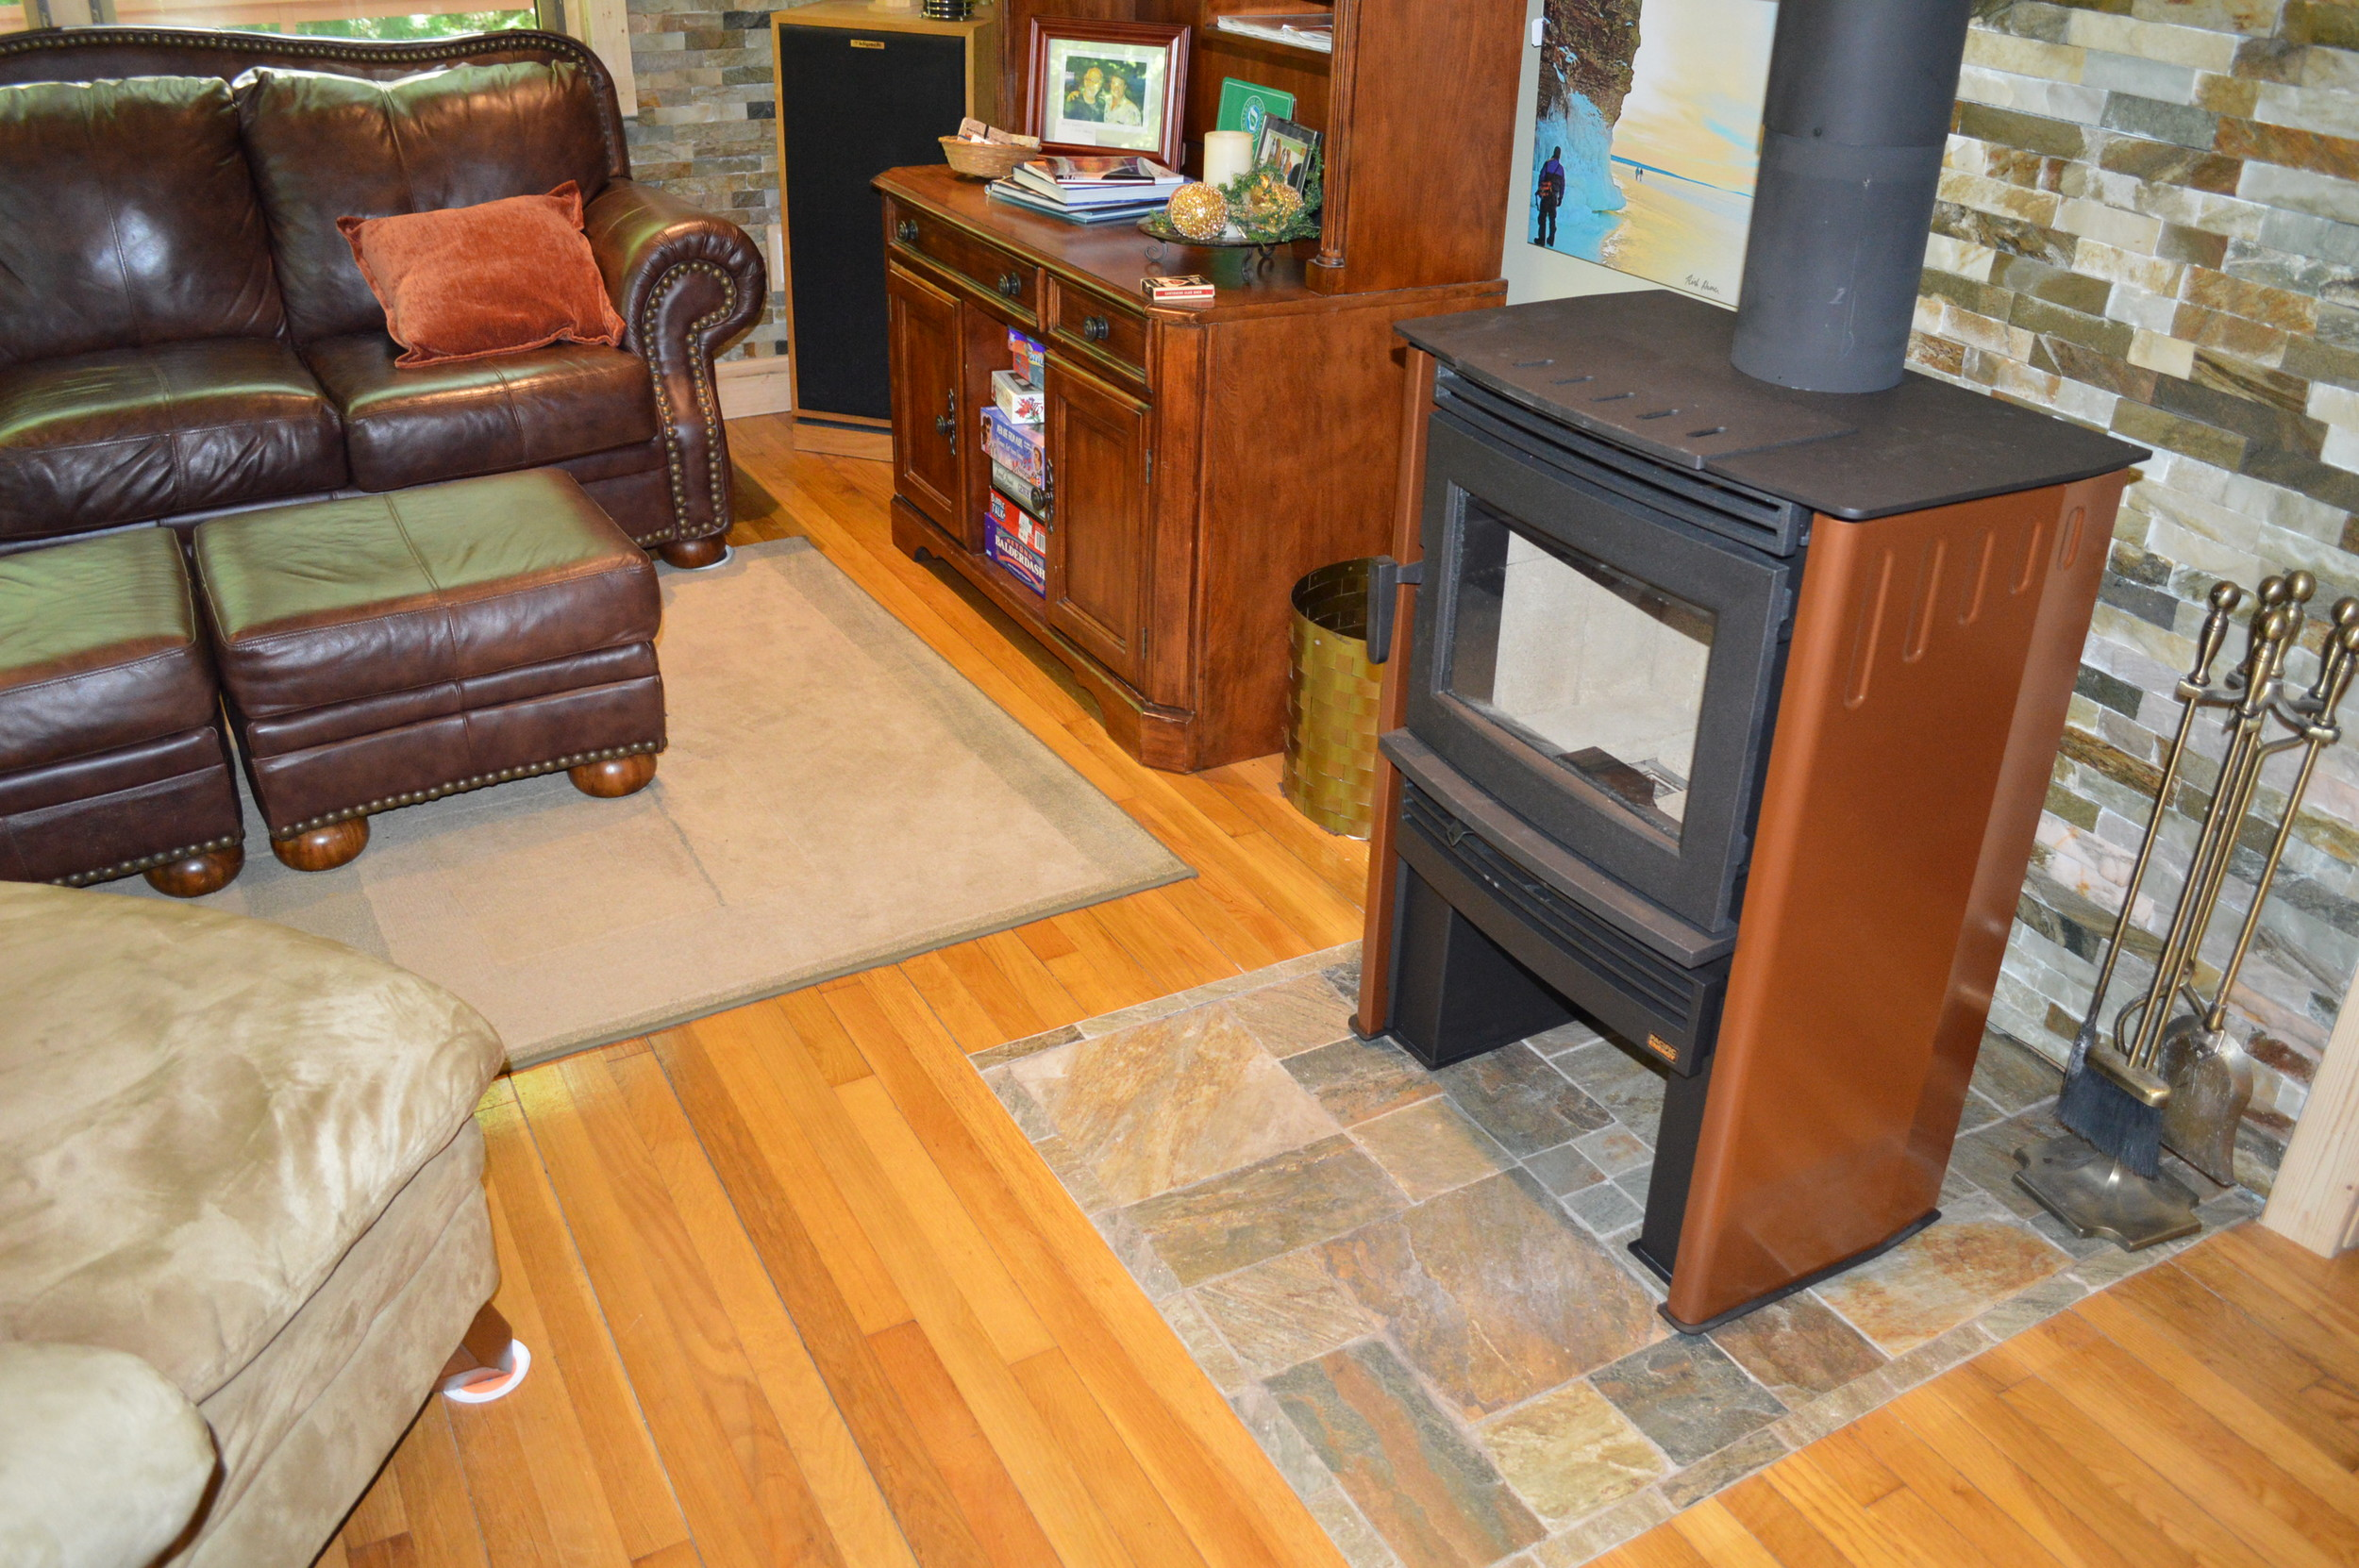 The new copper-sided stove.